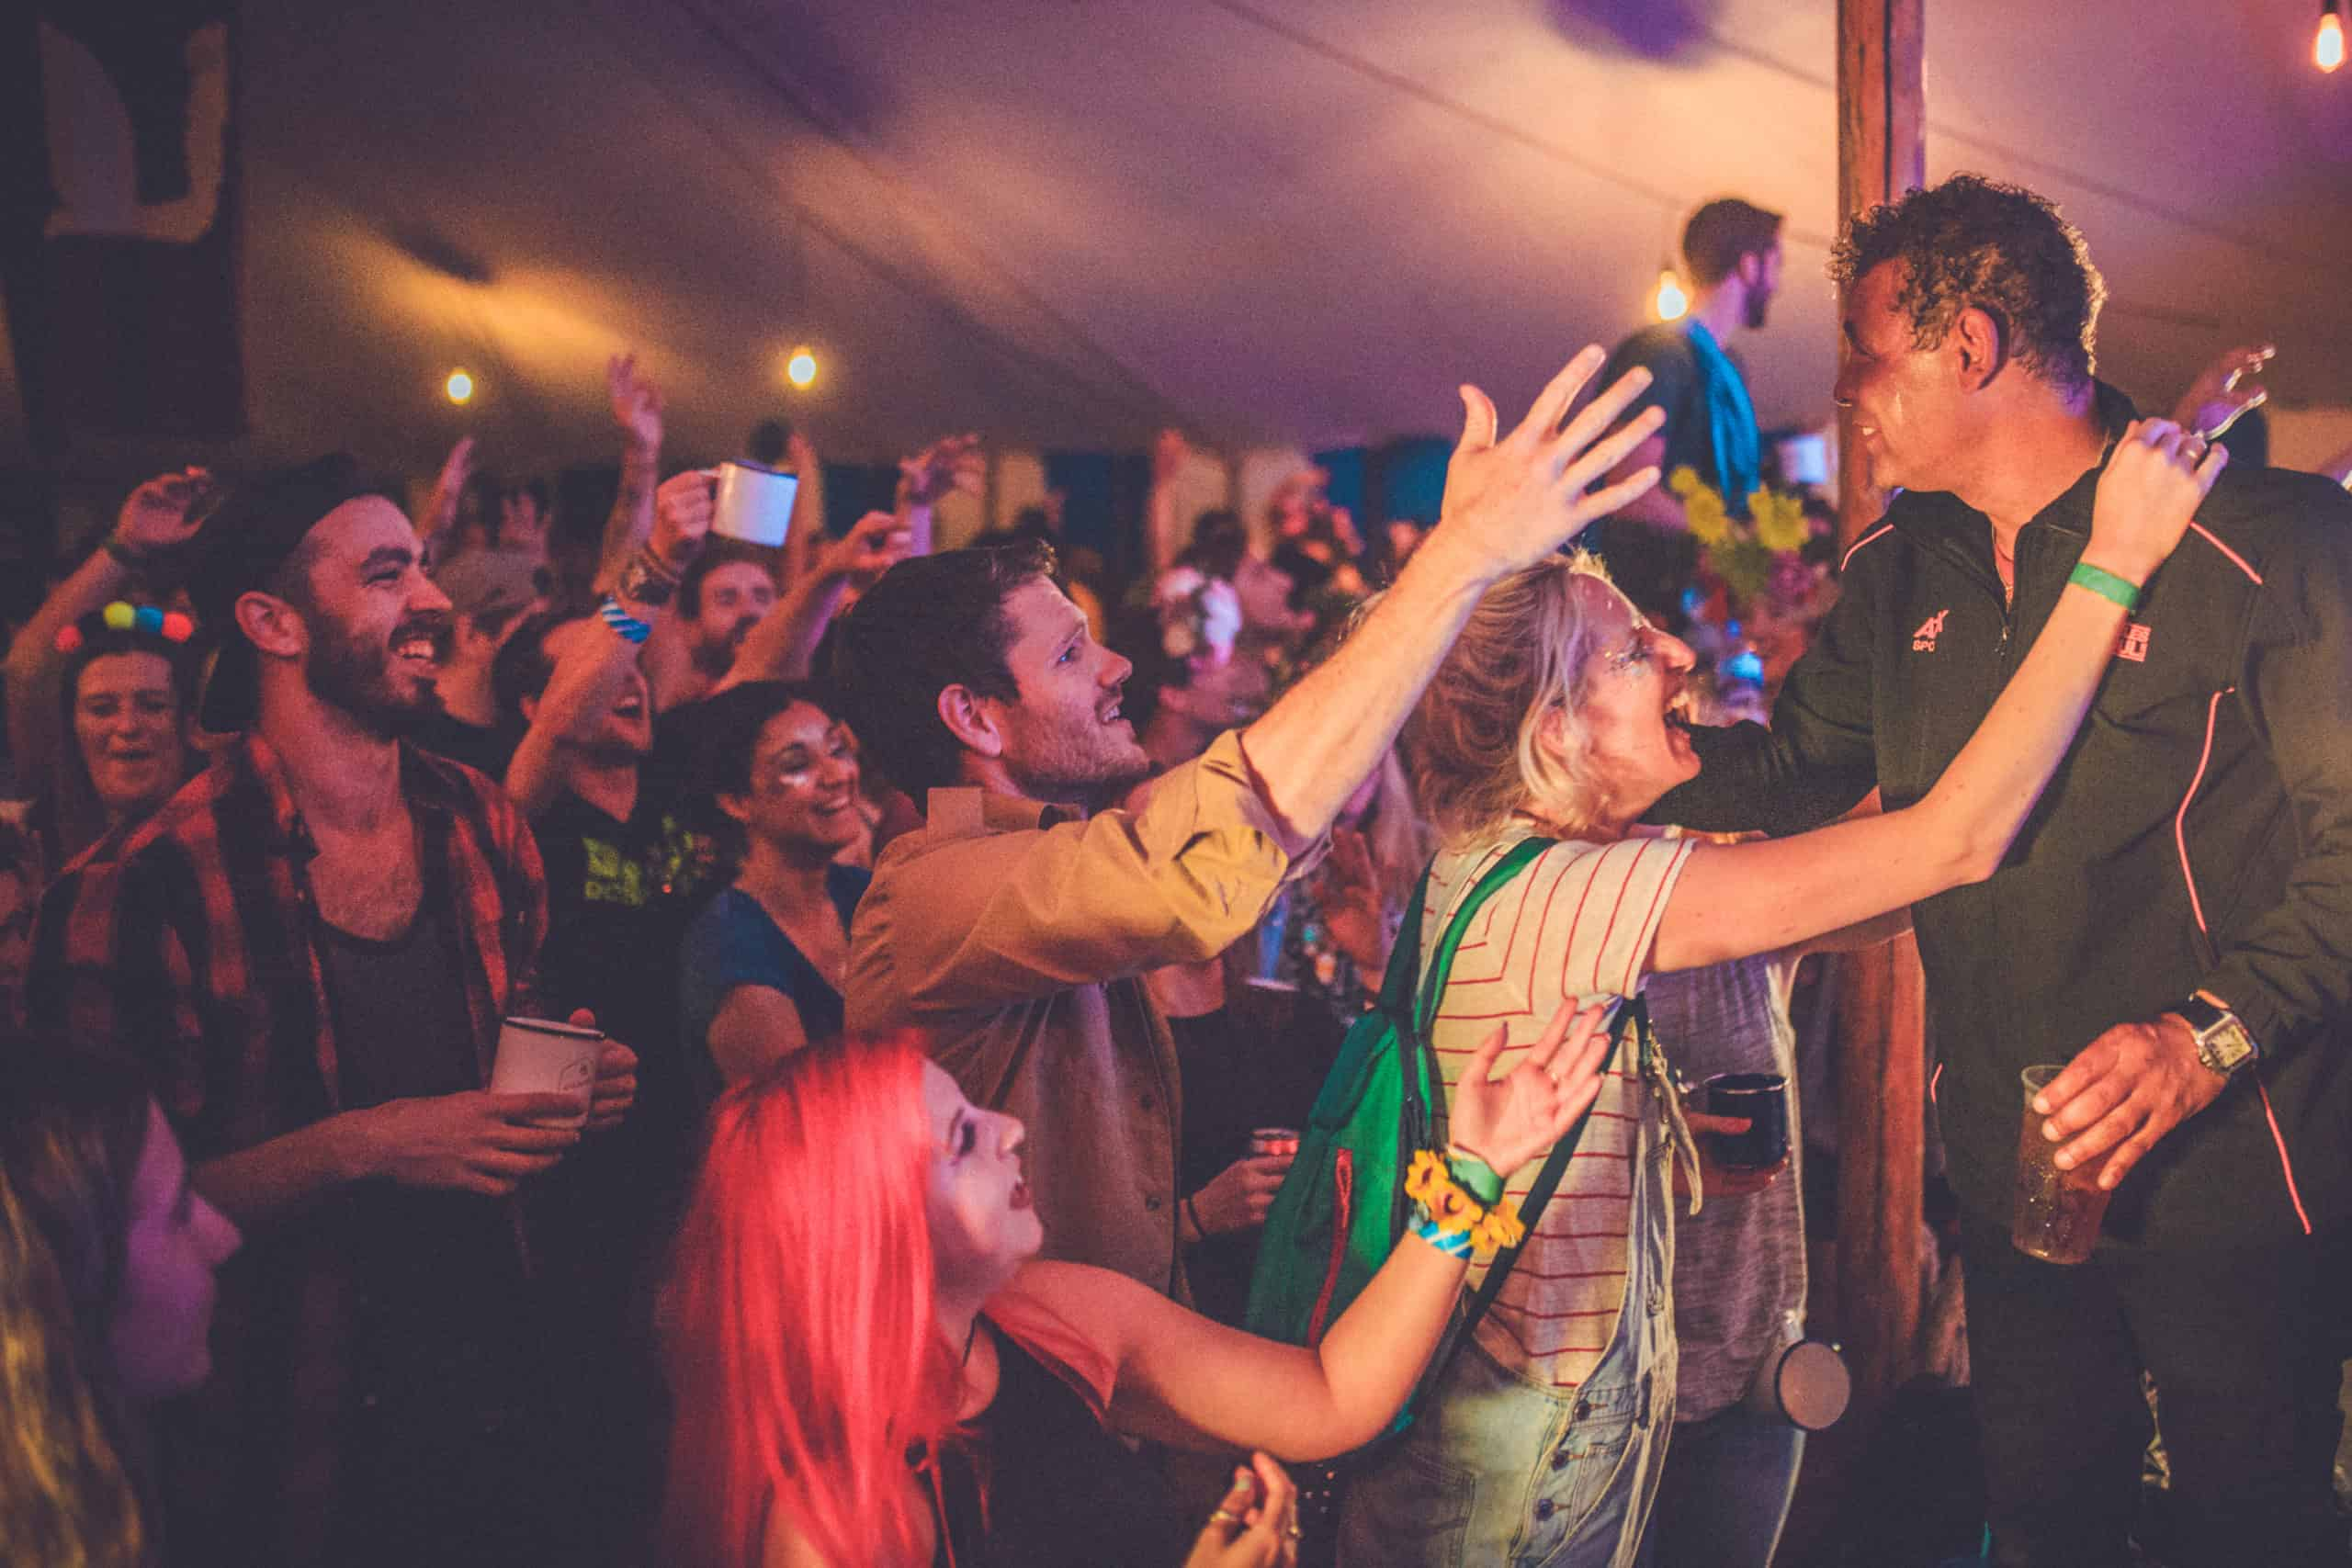 Craig Charles with the Camp Wildfire crowd. A summer weekend break in a forest near London and Kent. An outdoor woodland retreat featuring adventure activities, live music, DJs, parties and camping. Half summer adventure activity camp, half music festival, for adults only.